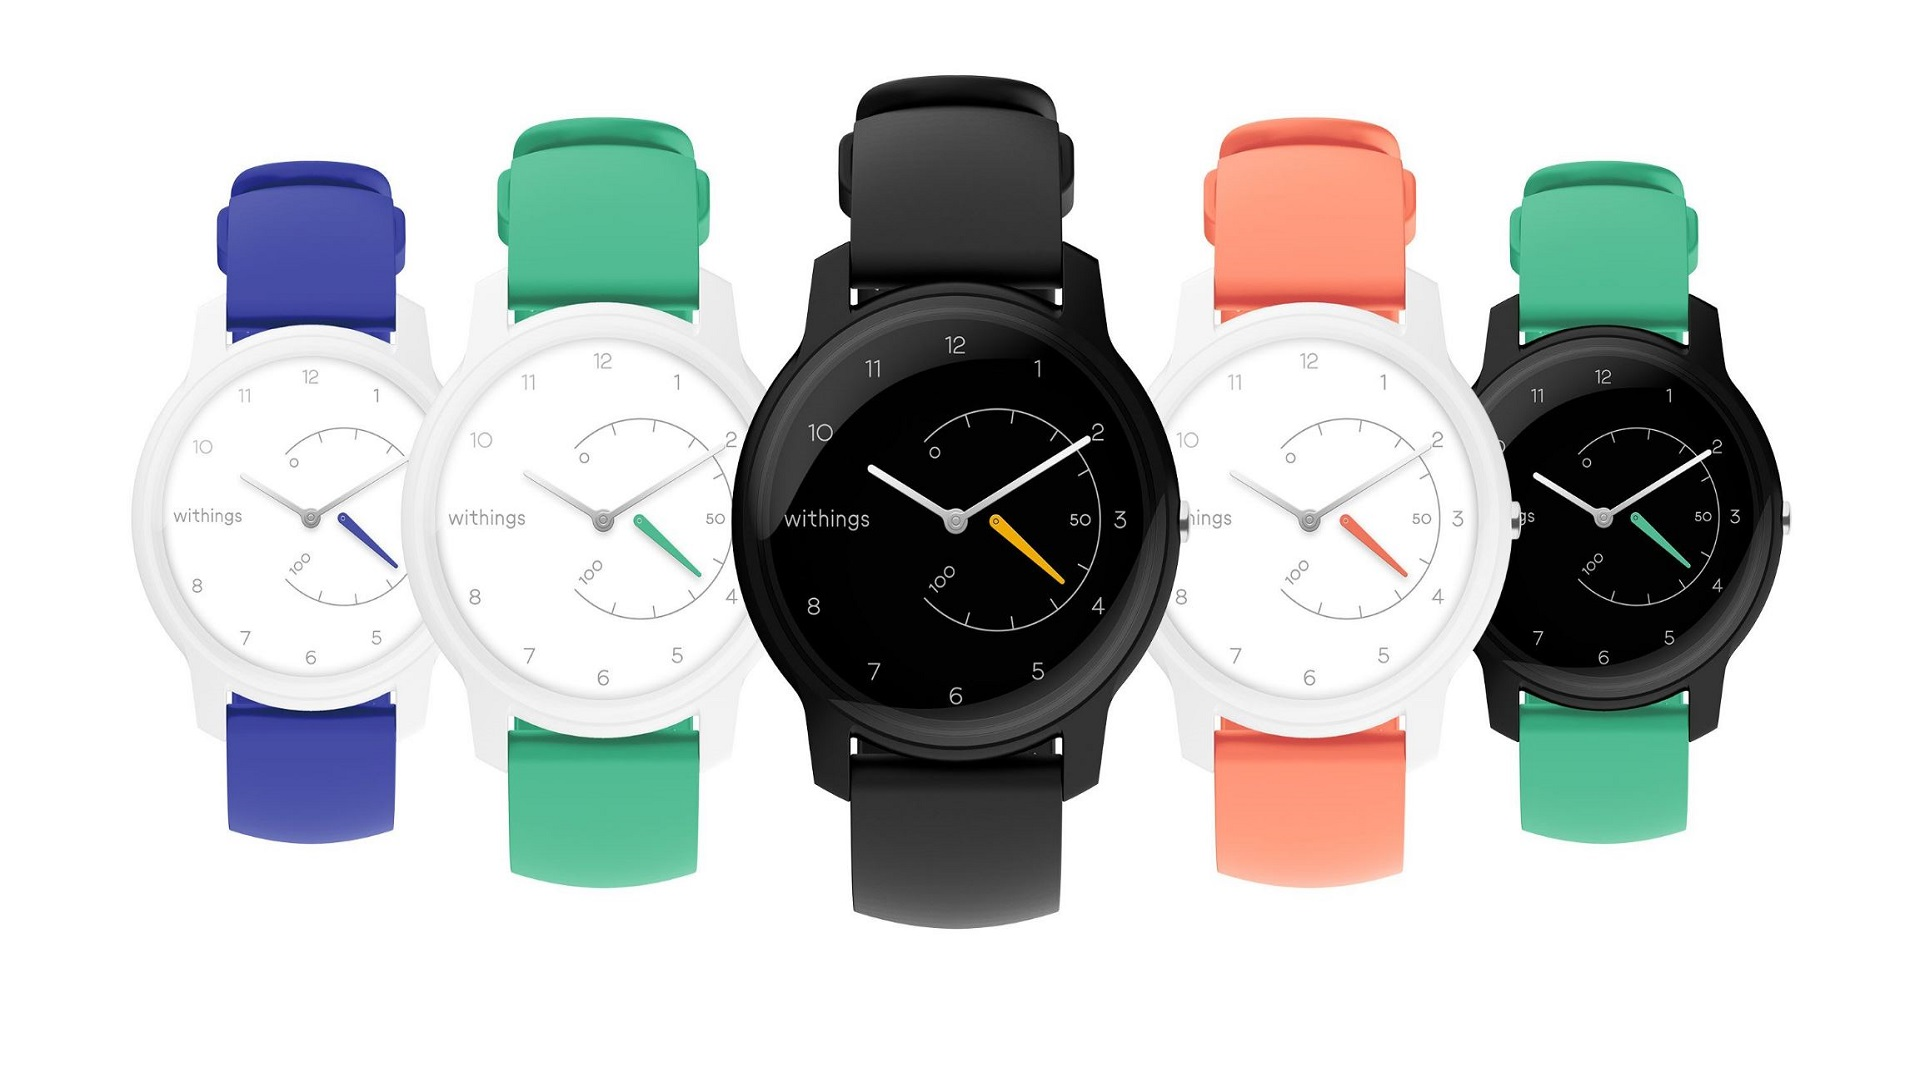 Montre GPS Withings Move - Test & Avis - Mon GPS Avis.fr